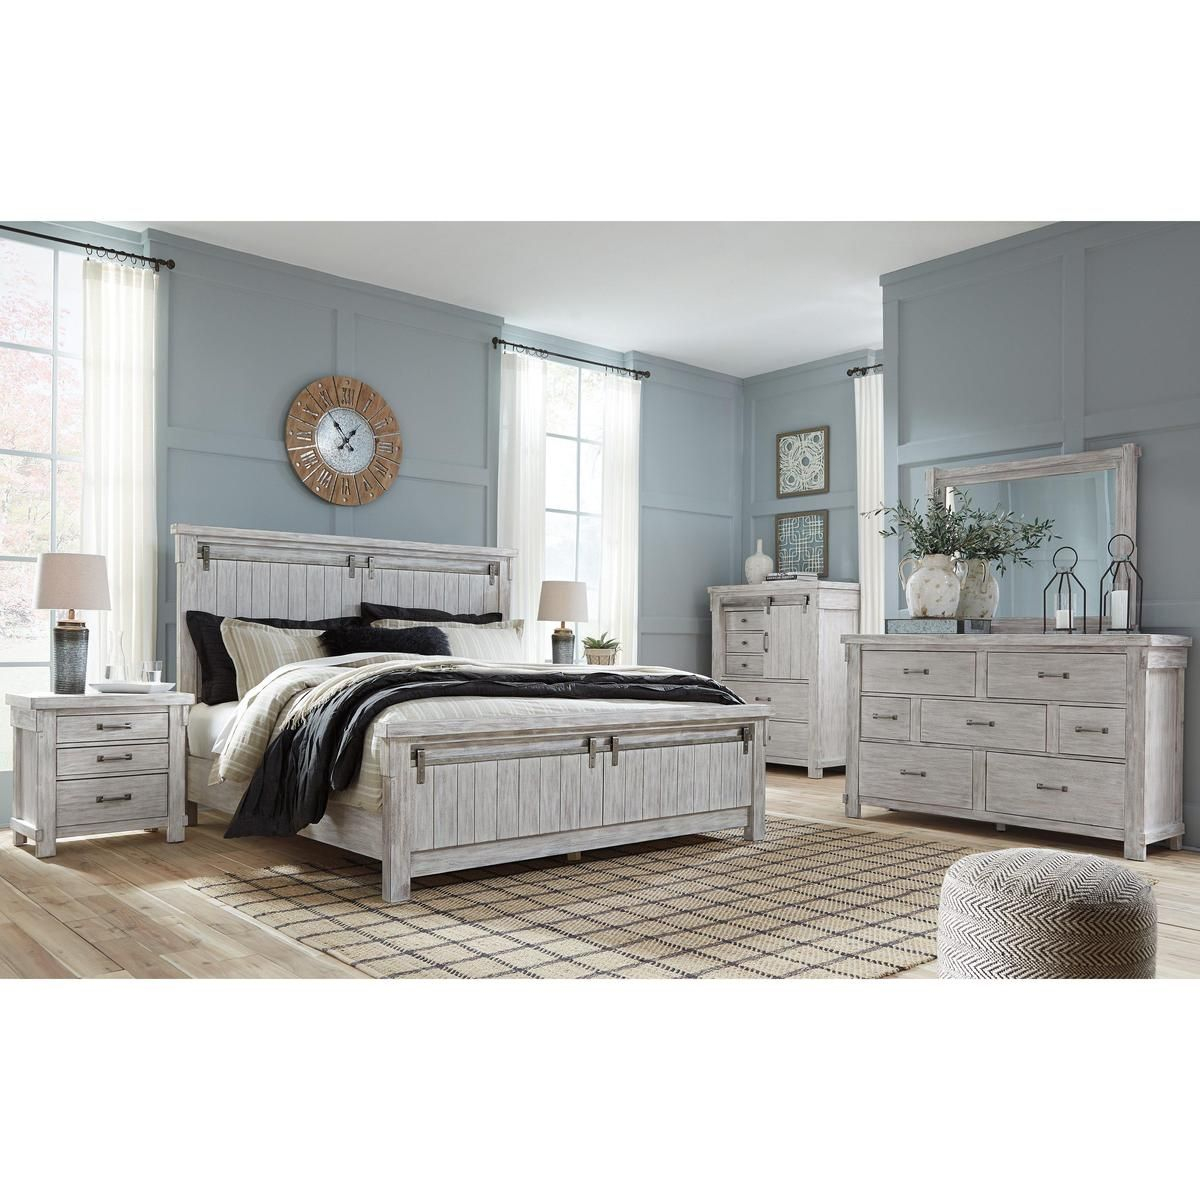 Made With Acacia Veneers And Select Hardwood Solids And Finished In A White Textur White Washed Bedroom Furniture King Size Bedroom Sets Bedroom Furniture Sets